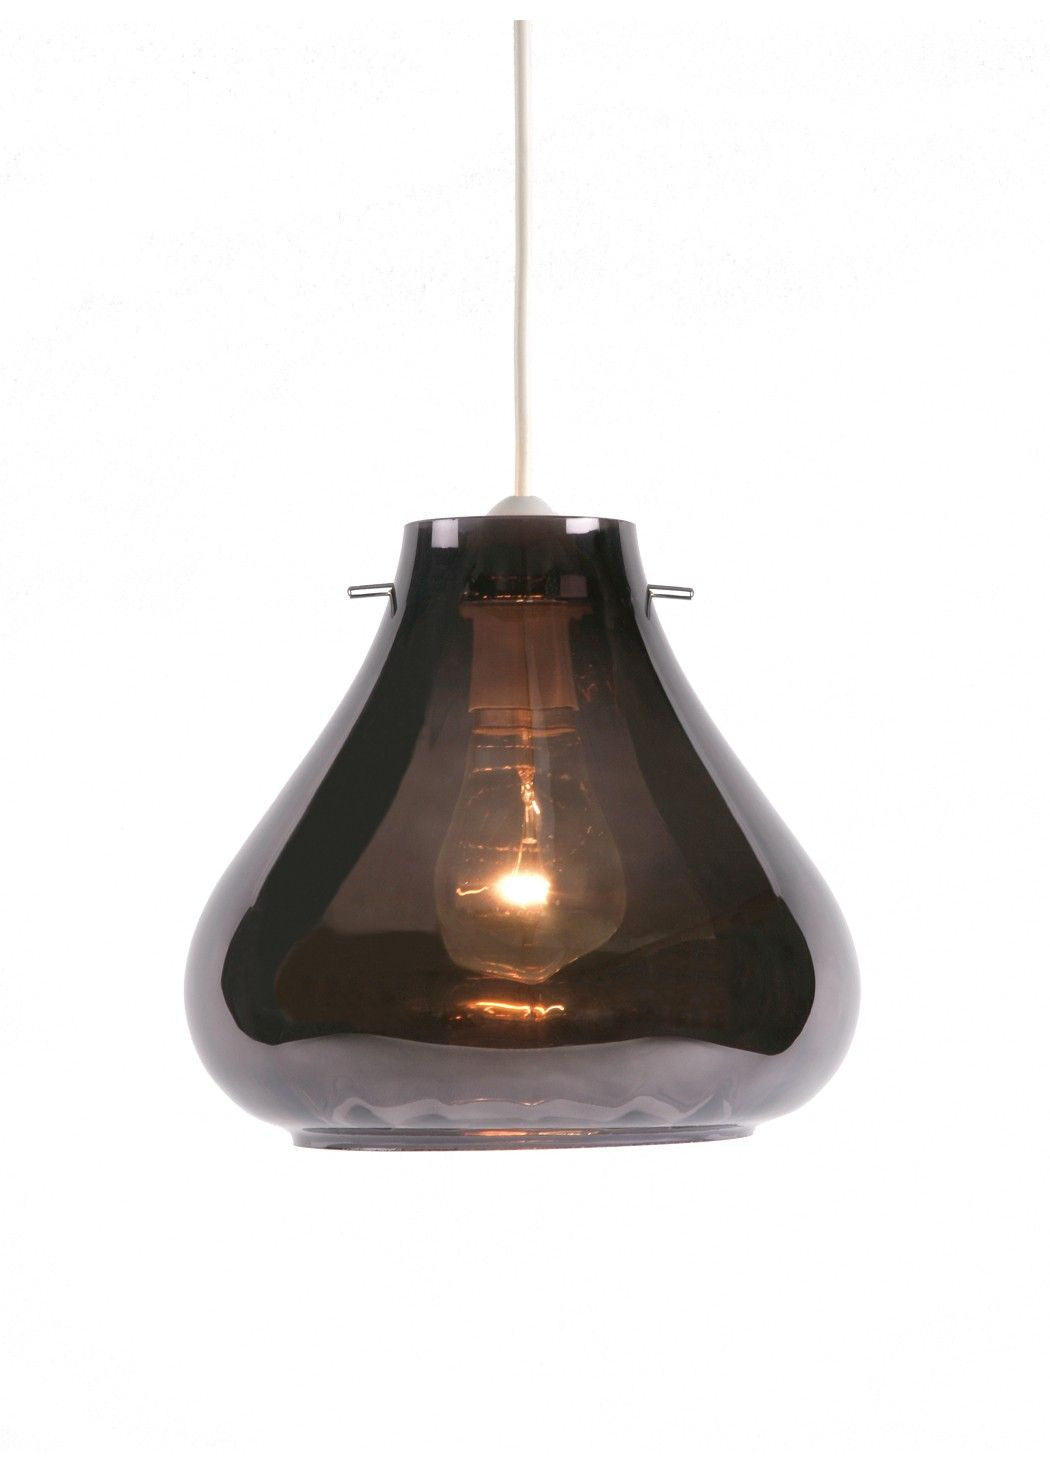 Keto Pendant Smoked Glass Non Electric Ceiling Shade